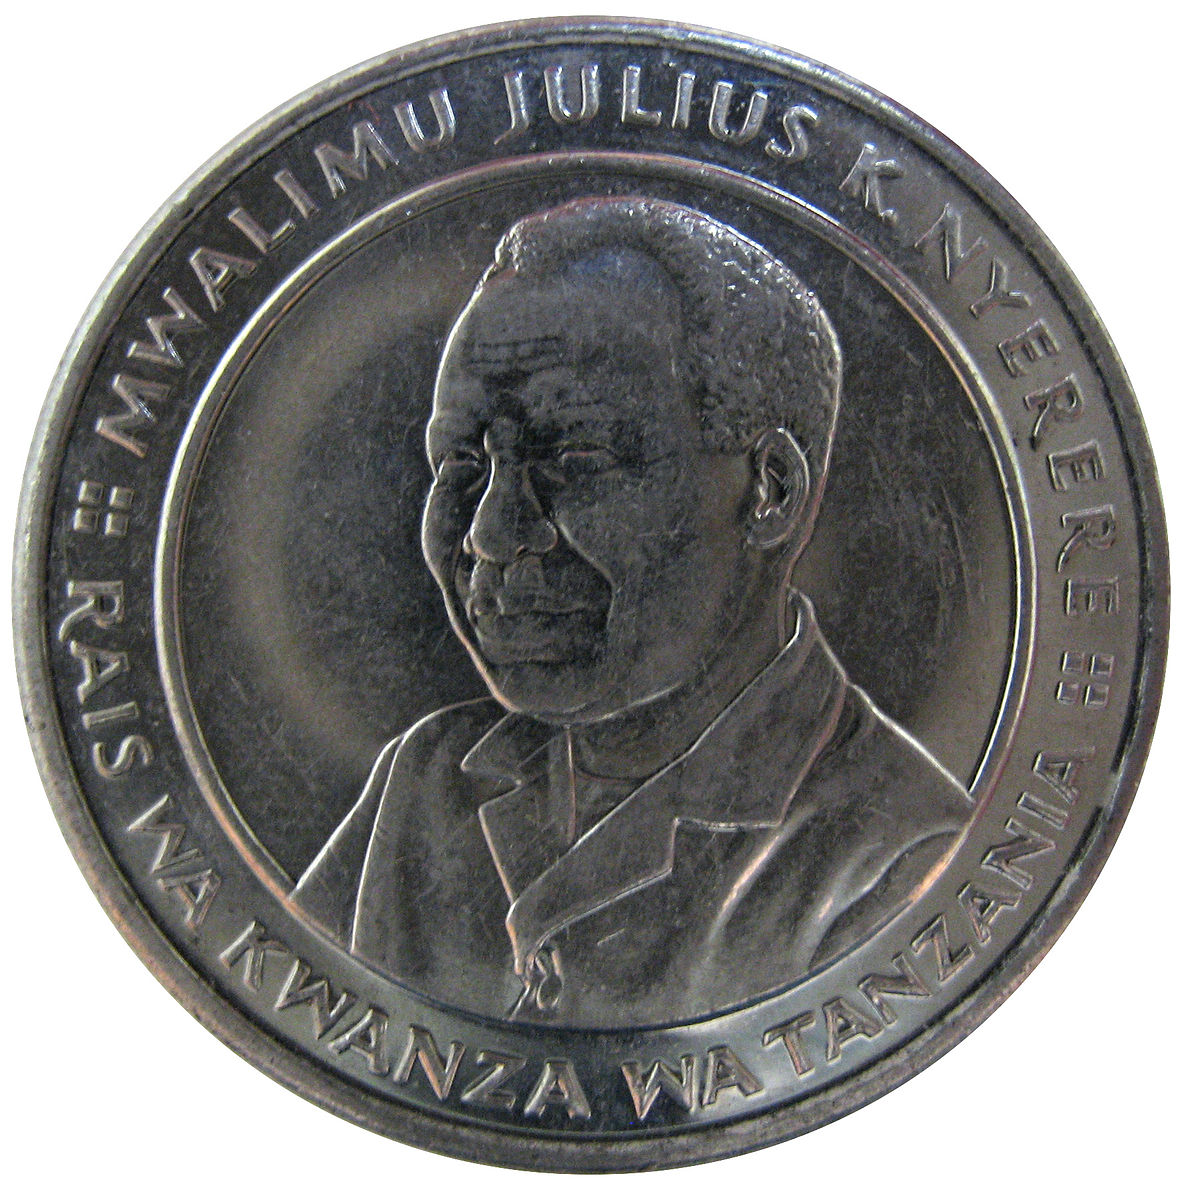 julius nyerere african socialism essay Ebscohost serves thousands of libraries with premium essays, articles and other content including the political ideology of julius nyerere: the structural limitations of 'african socialism.